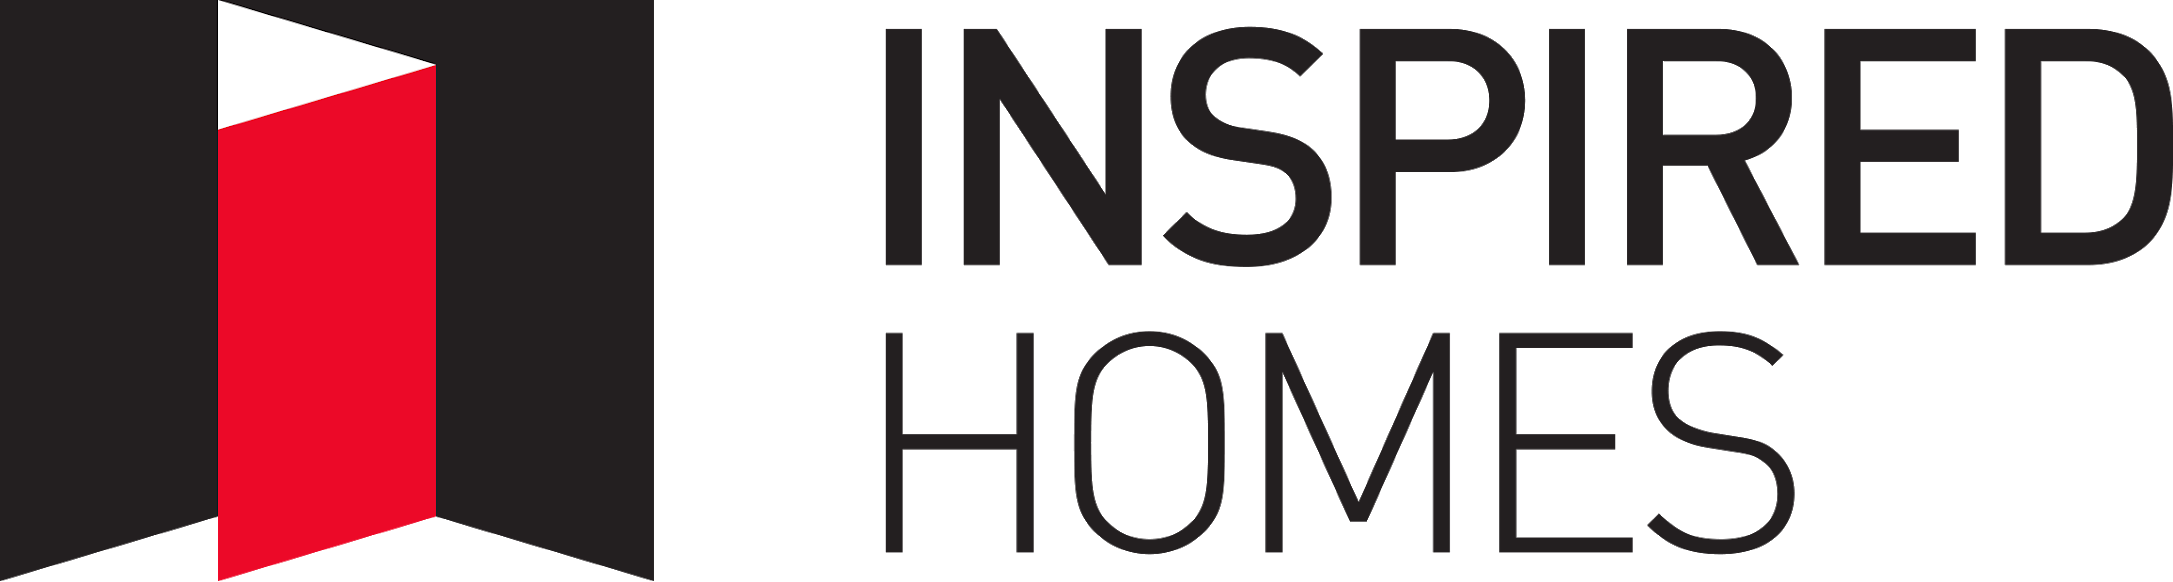 inspired homes logo - mojo urban living